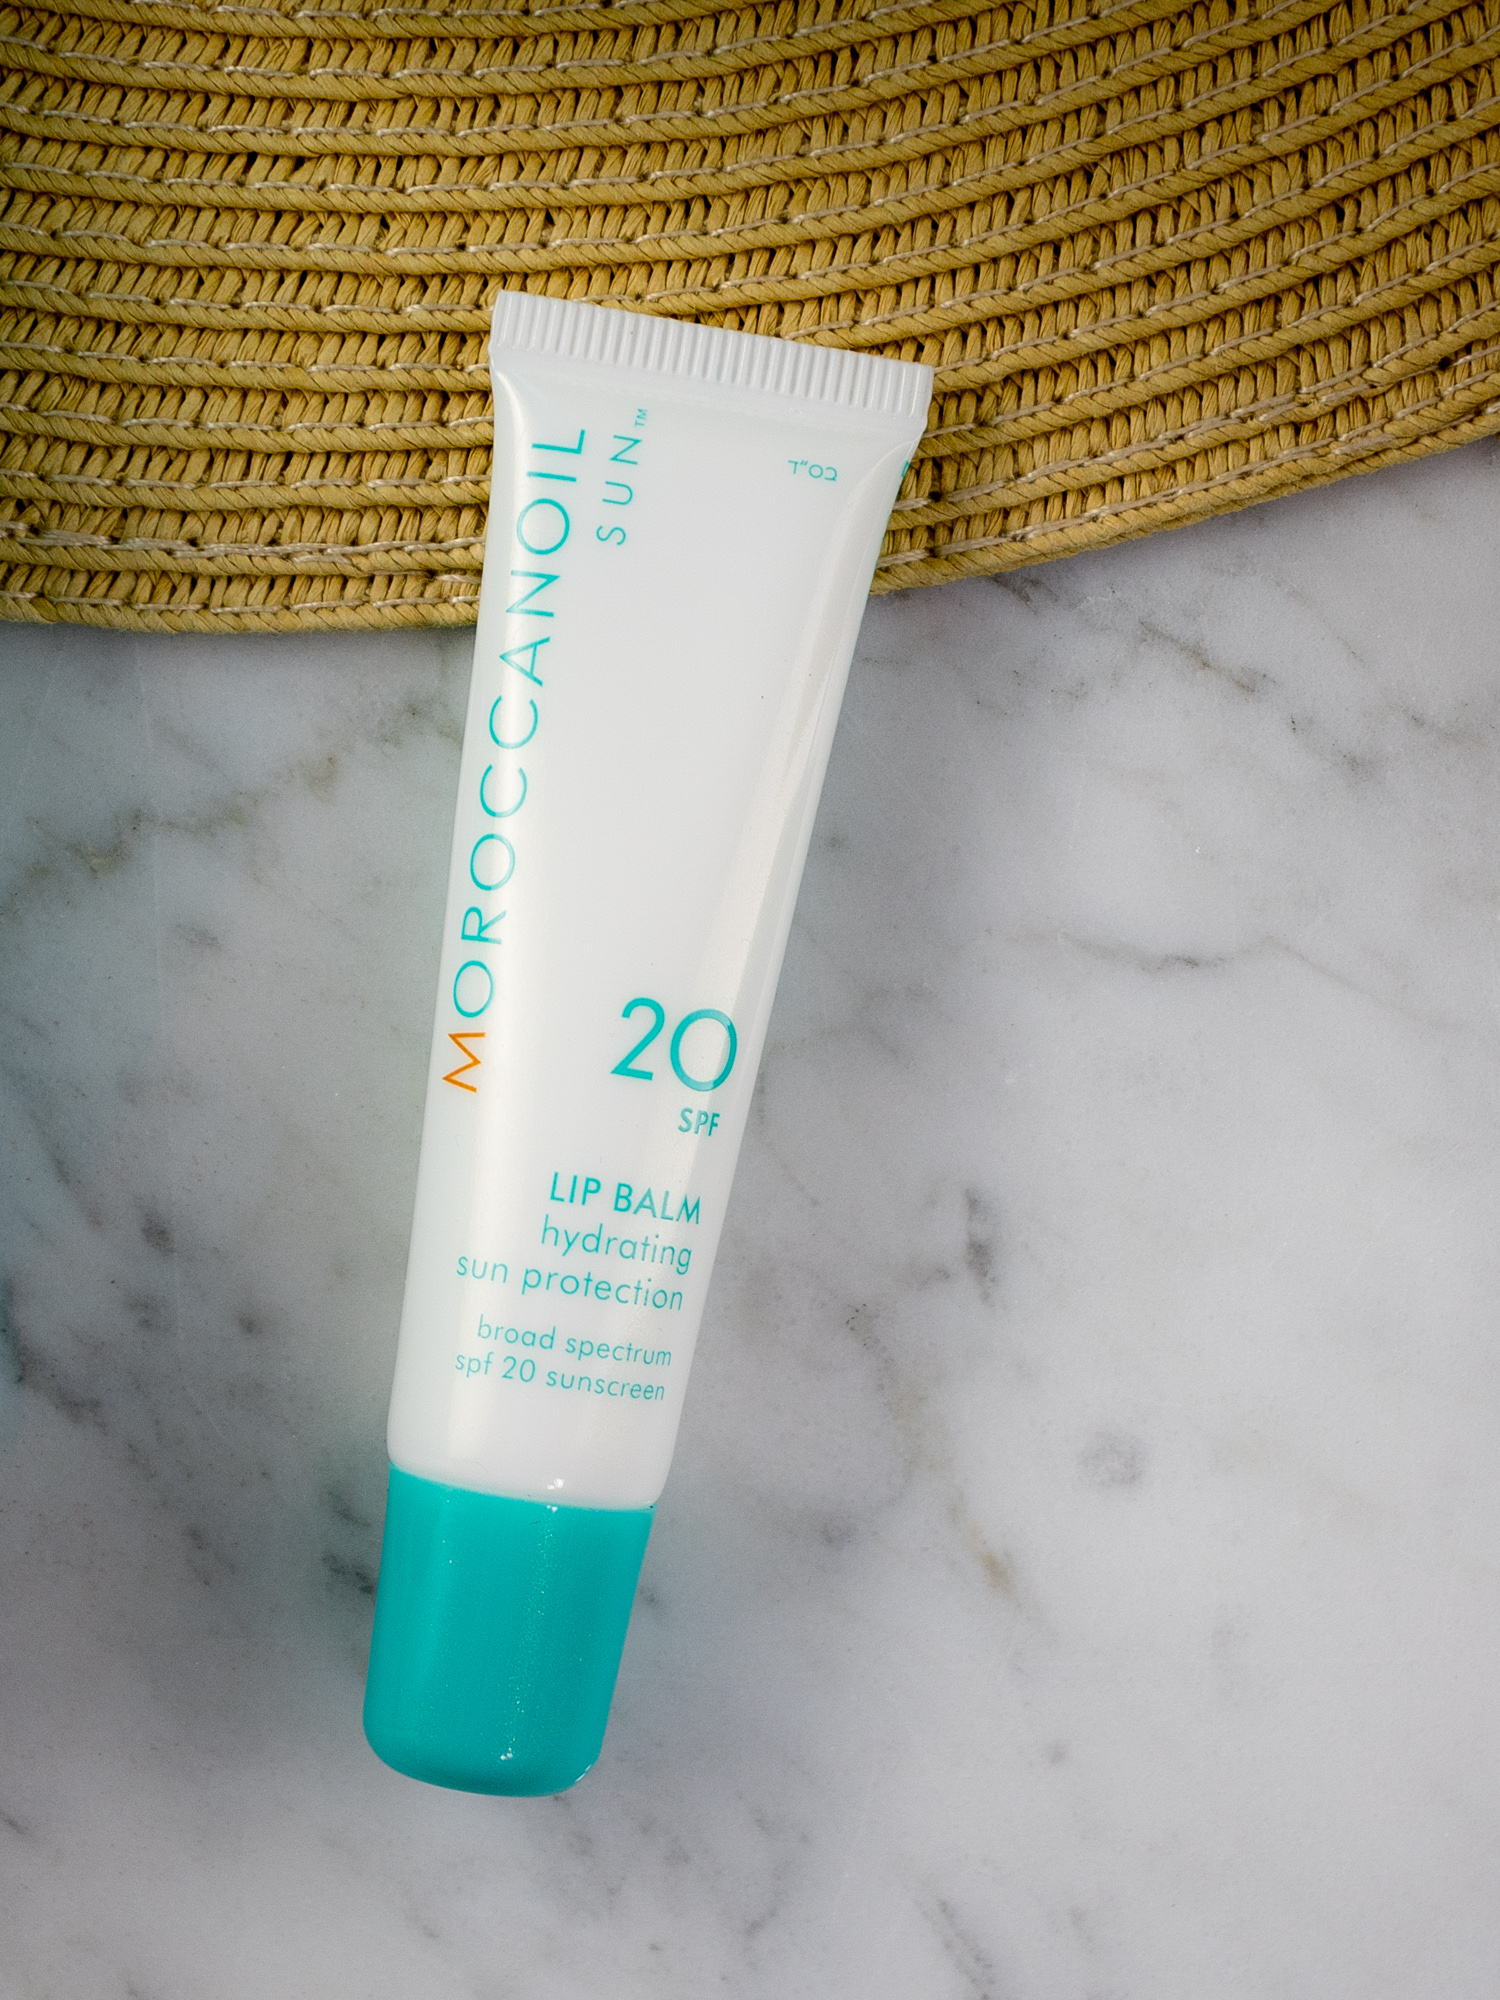 Moroccanoil Sun Protection Favorites: Lip Balm SPF20